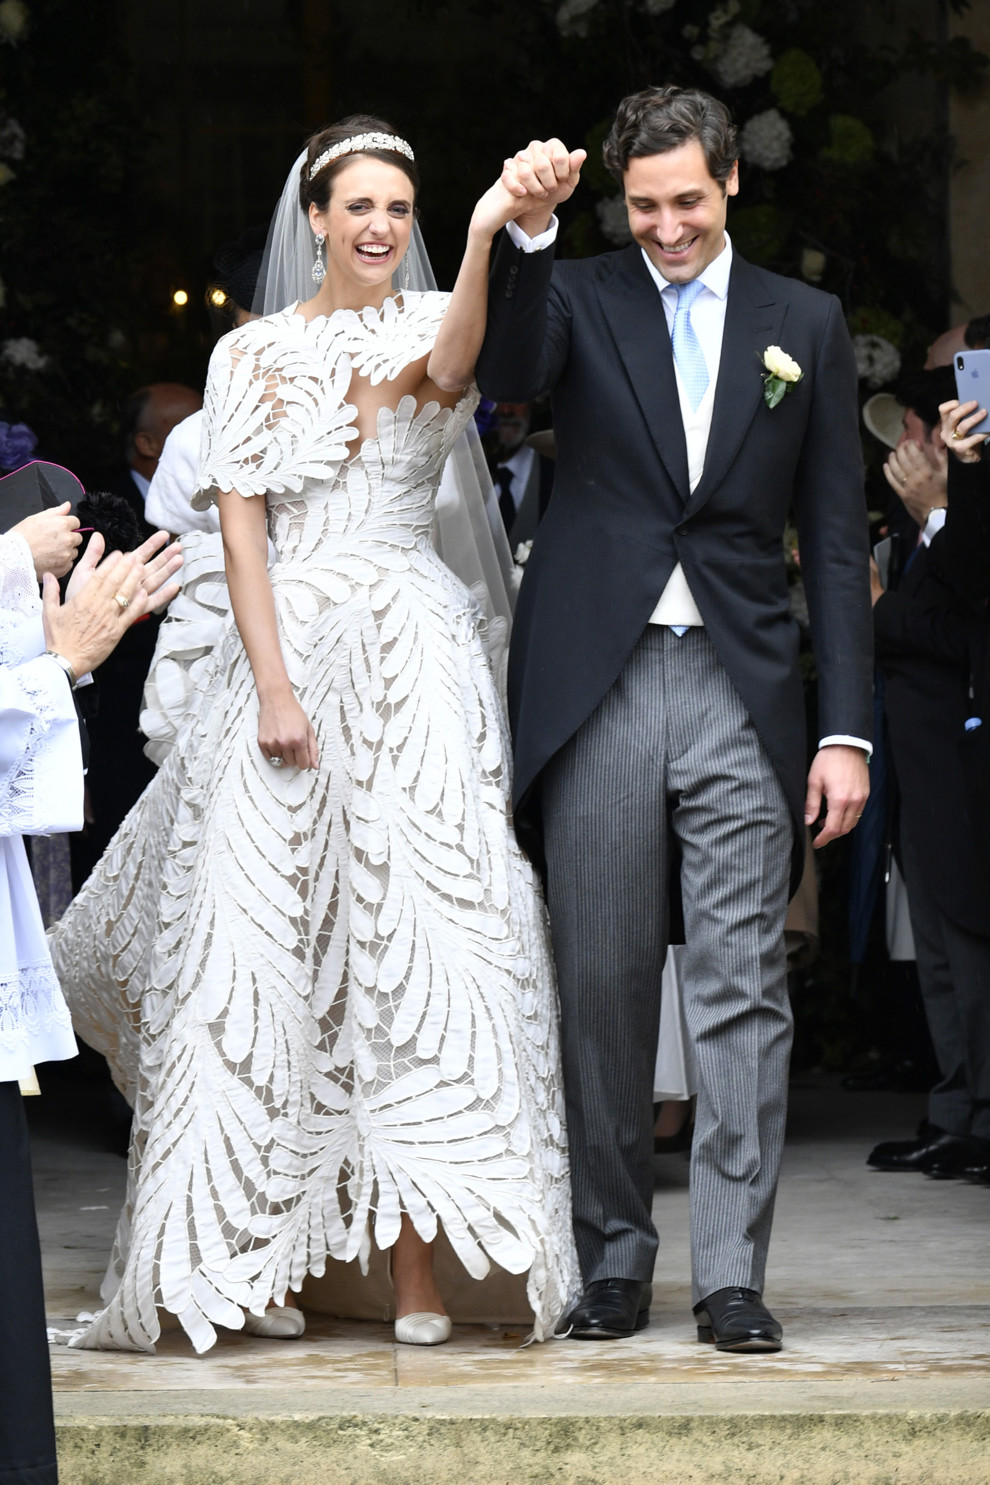 Royal-Wedding-Olympia-Von-Und-Arco Zinneberg Got Married In An Oscar De La Renta Dress